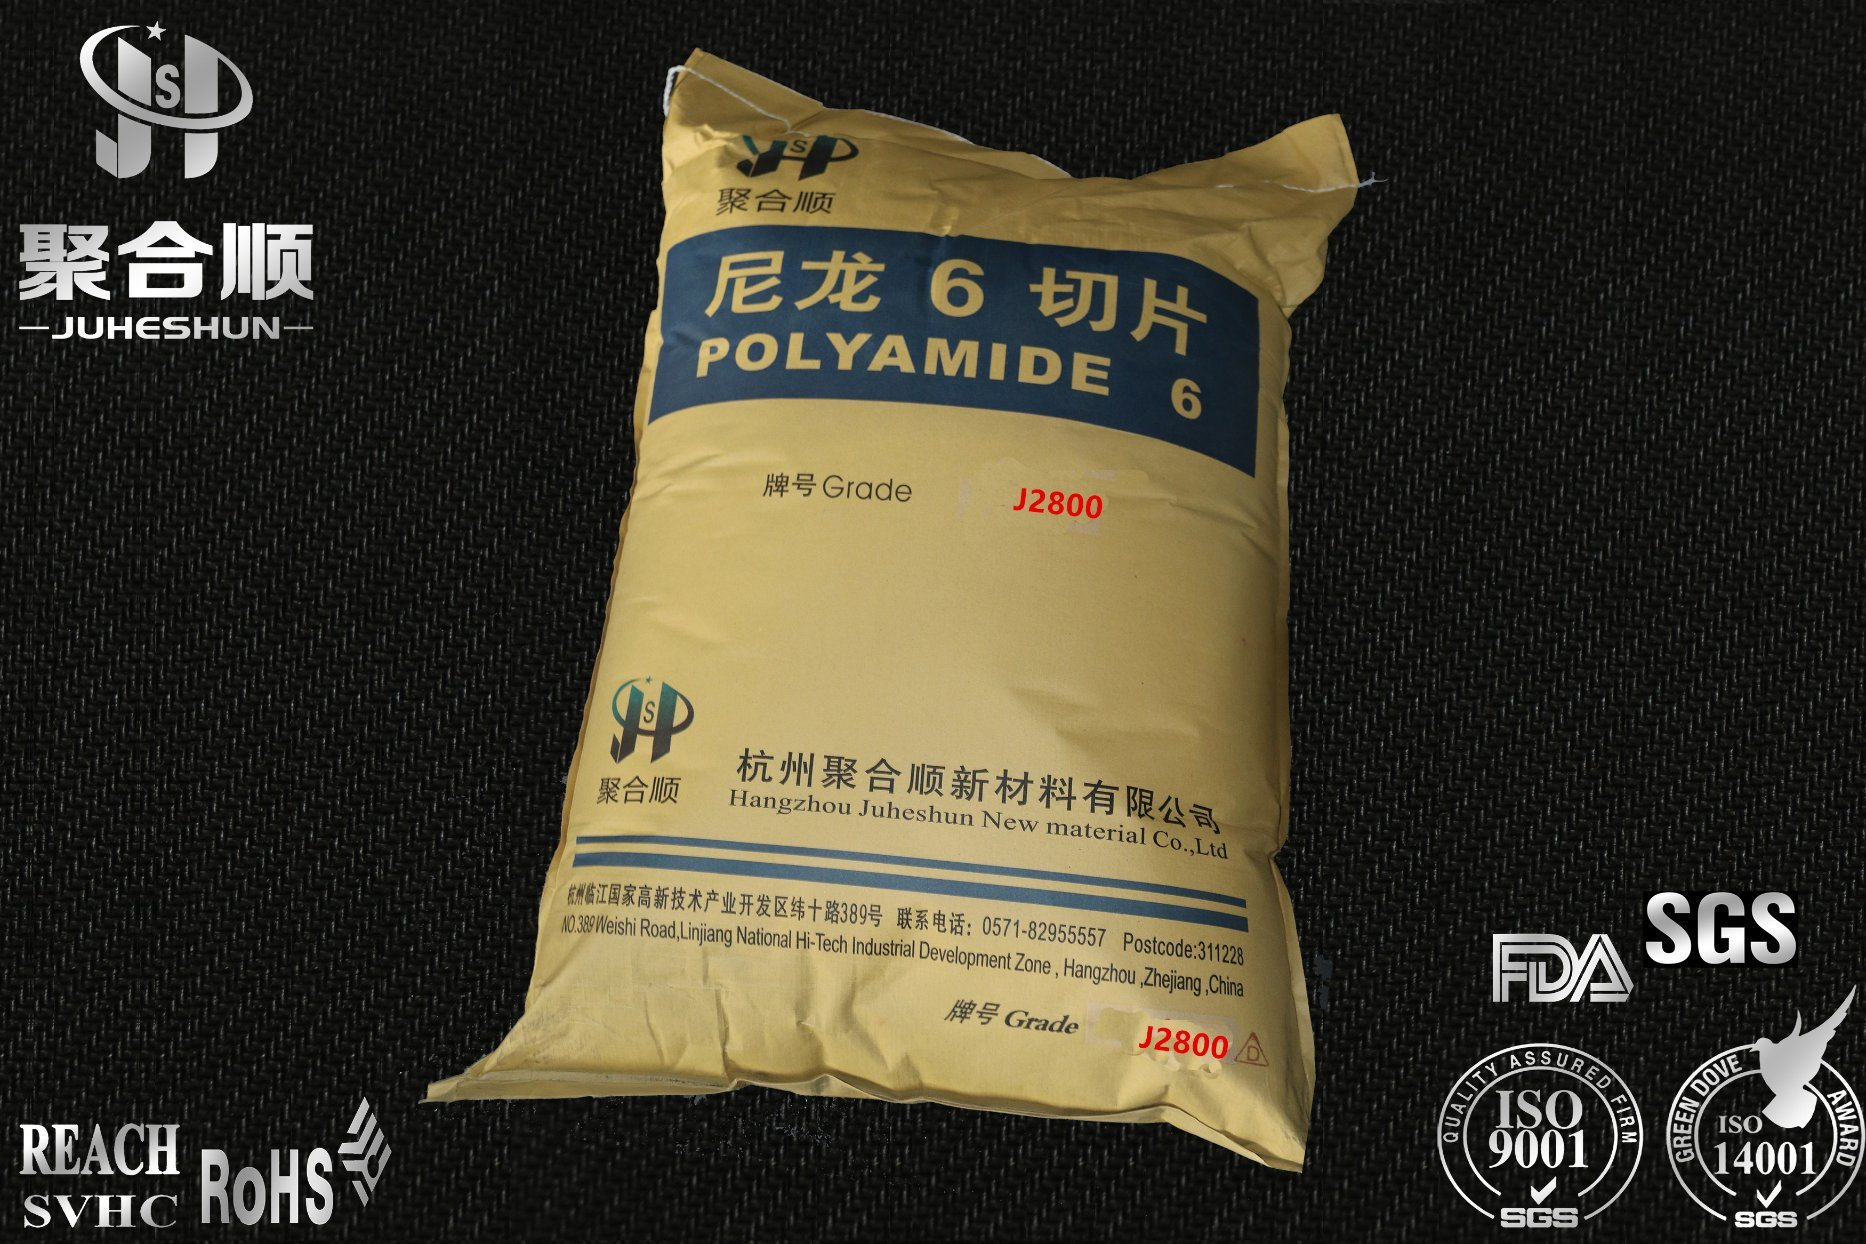 J2800/Nylon 6 Chips/ Polyamide-6 Granules/ Engineering Grade Nylon 6 Chips/PA 6